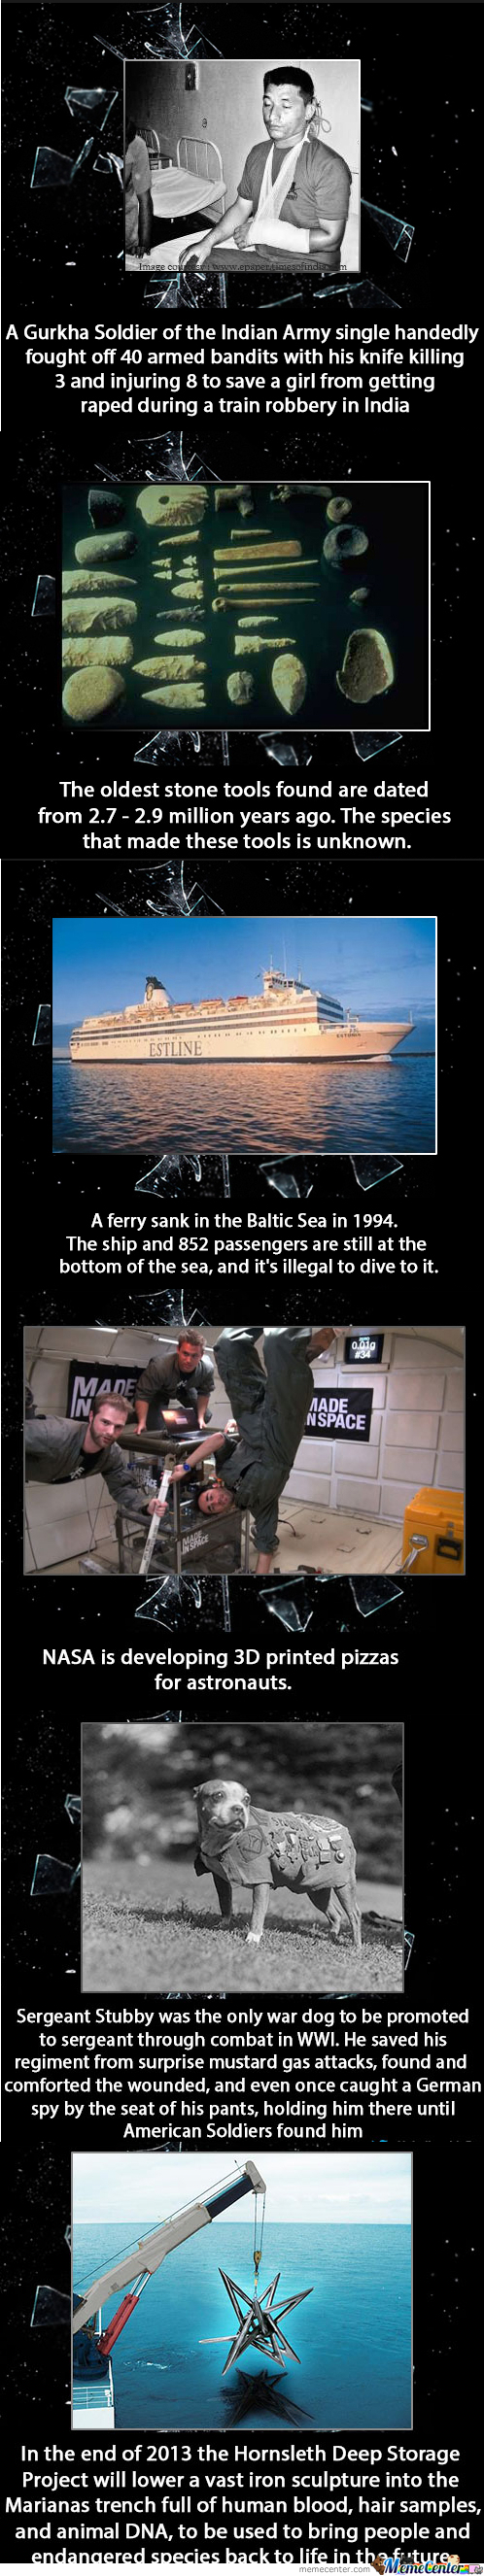 Cool Facts And Faith In Humanity